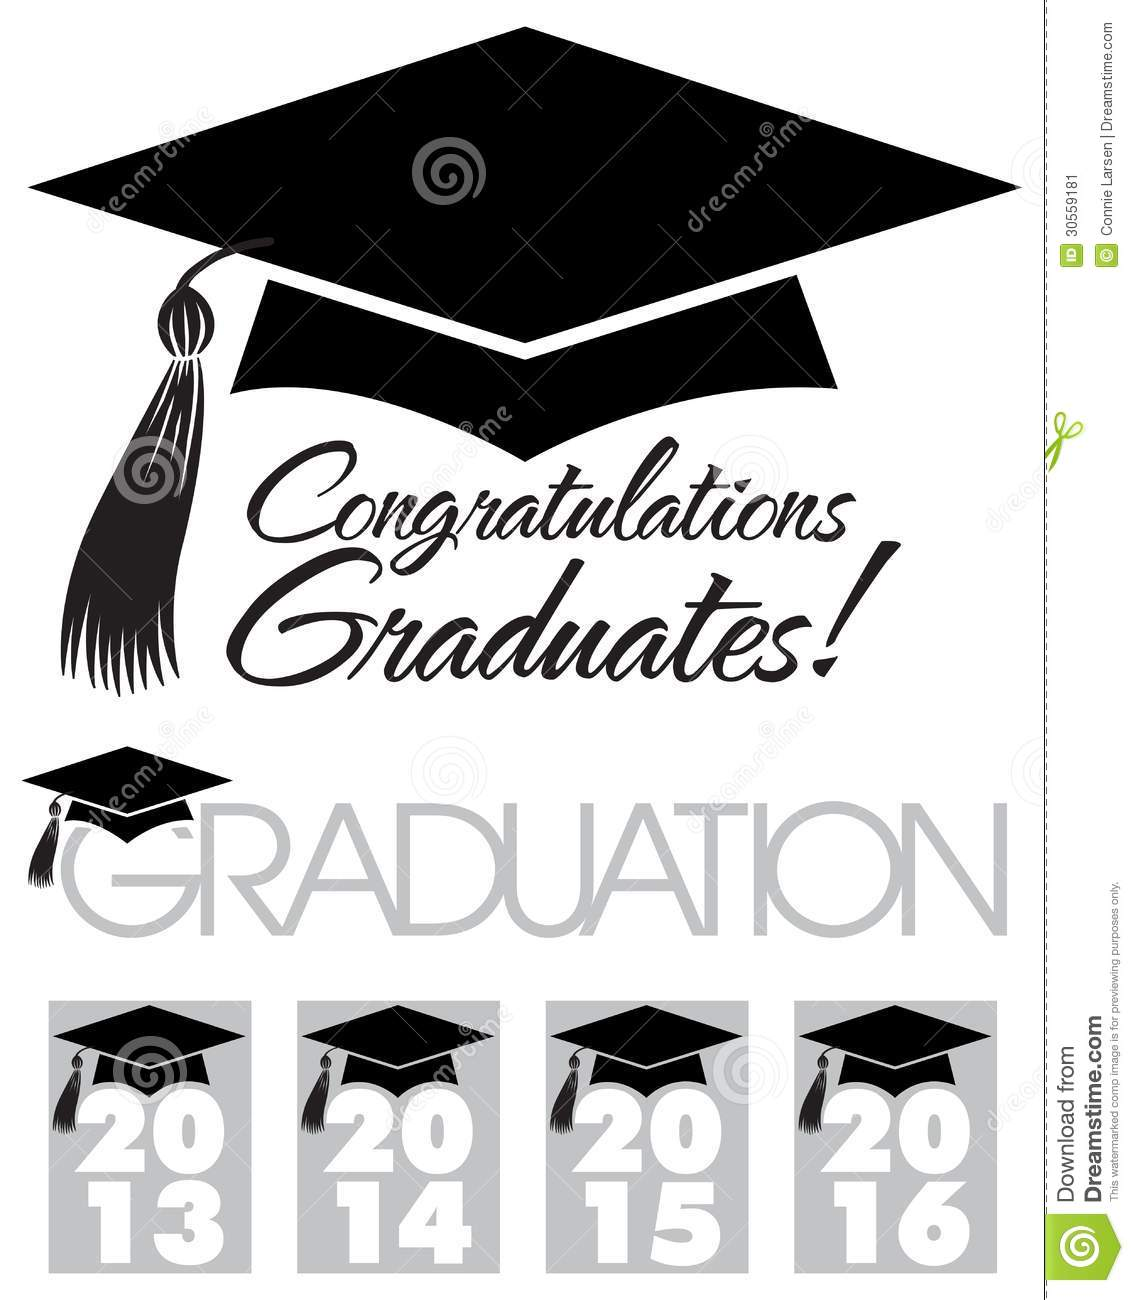 Congratulations Graduates Cap/eps Stock Vector.